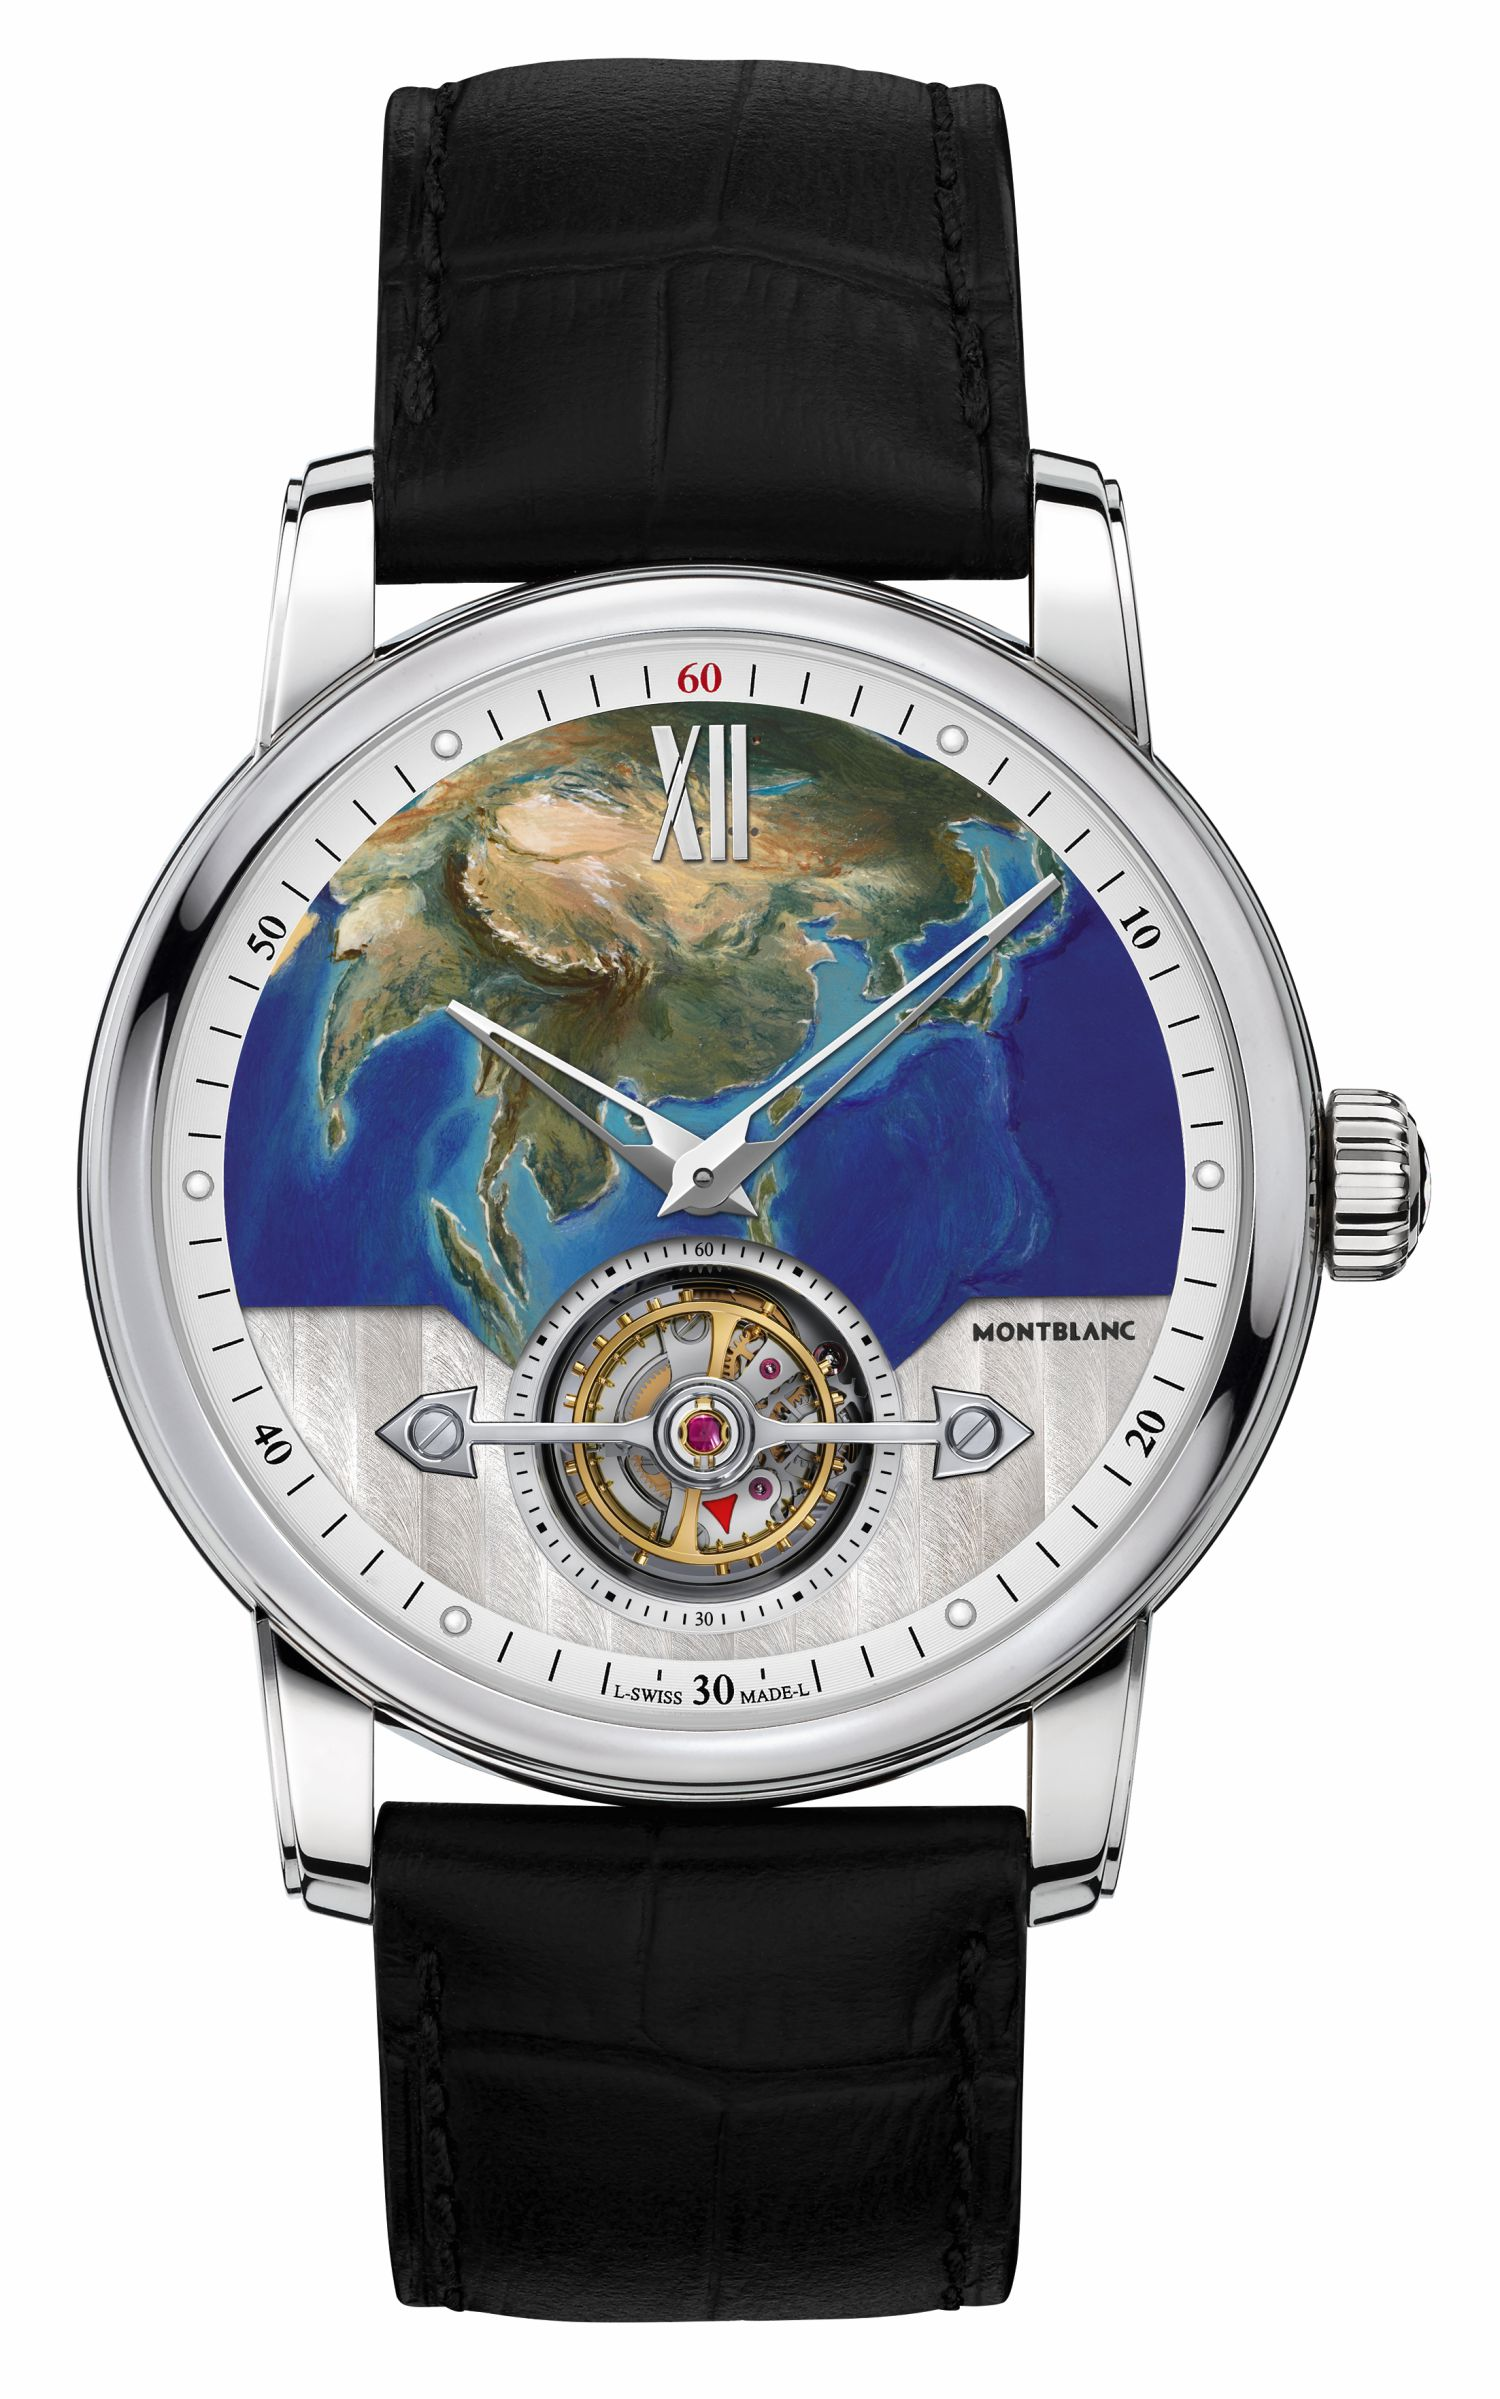 Montblanc-4810-ExoTourbilon-Slim-110-Years-Edition-Asia.jpg